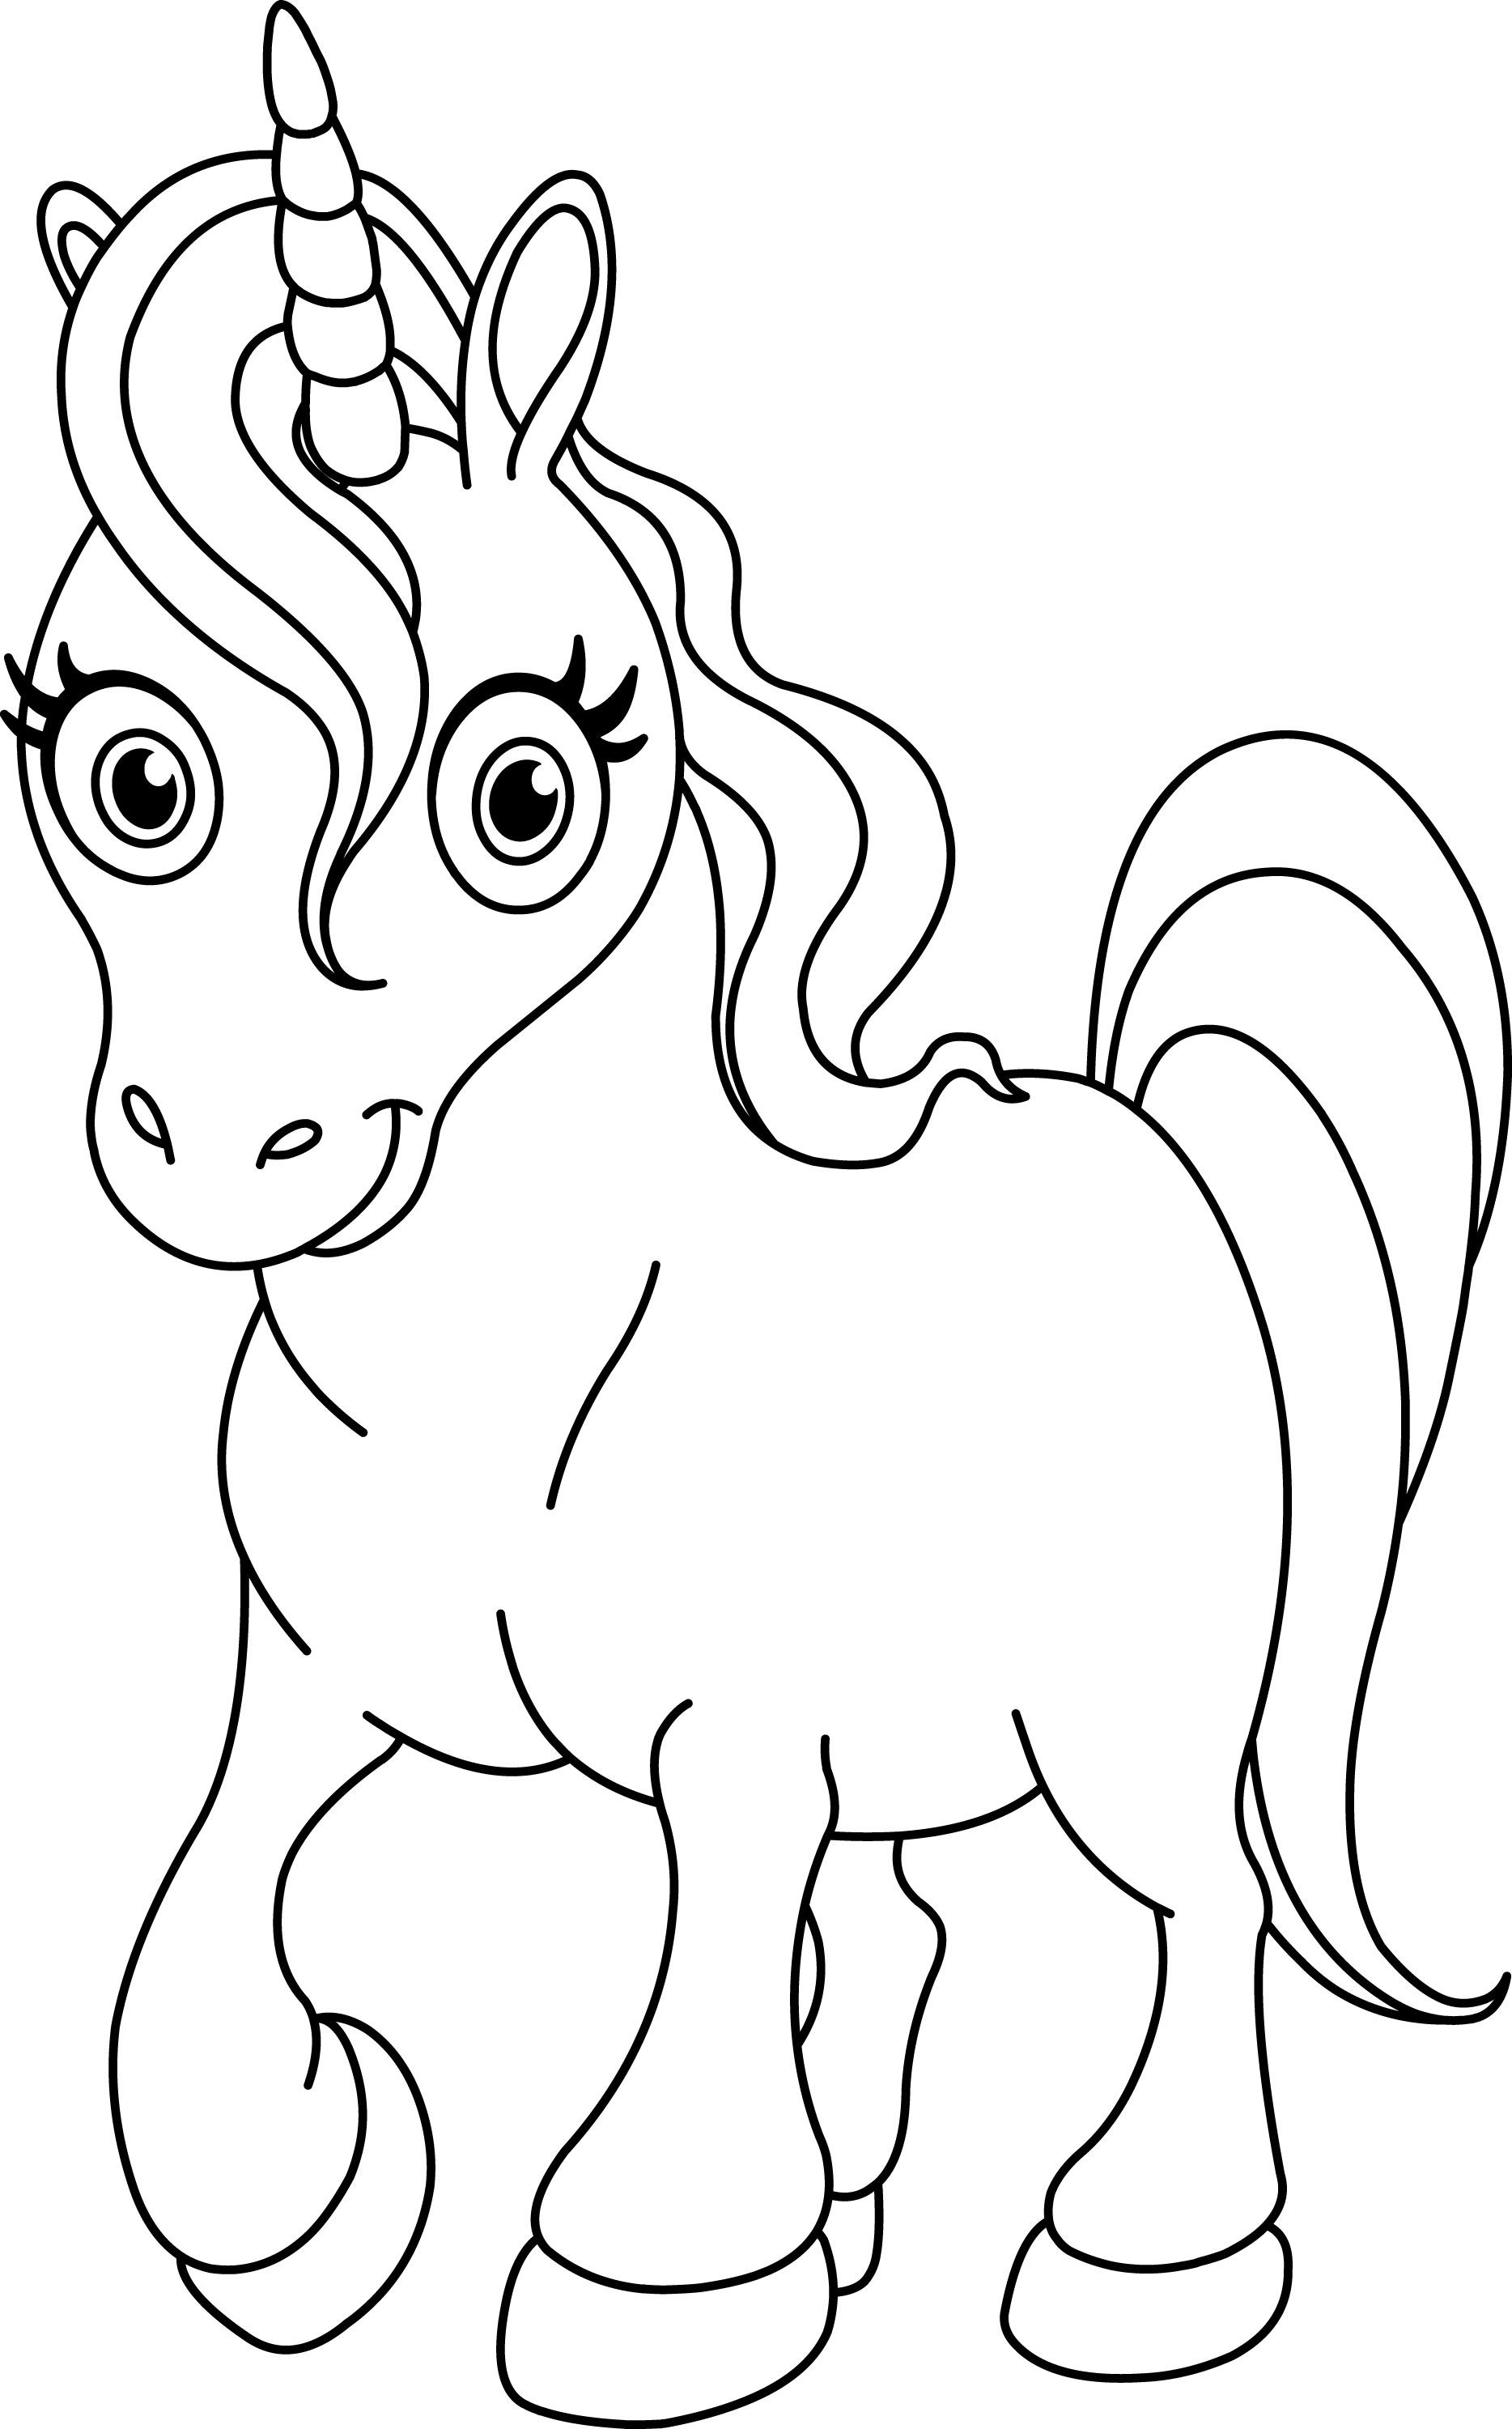 Preschool coloring games online free - Pay Attention For This Explanation To Do The Unicorn Coloring Pages Printable